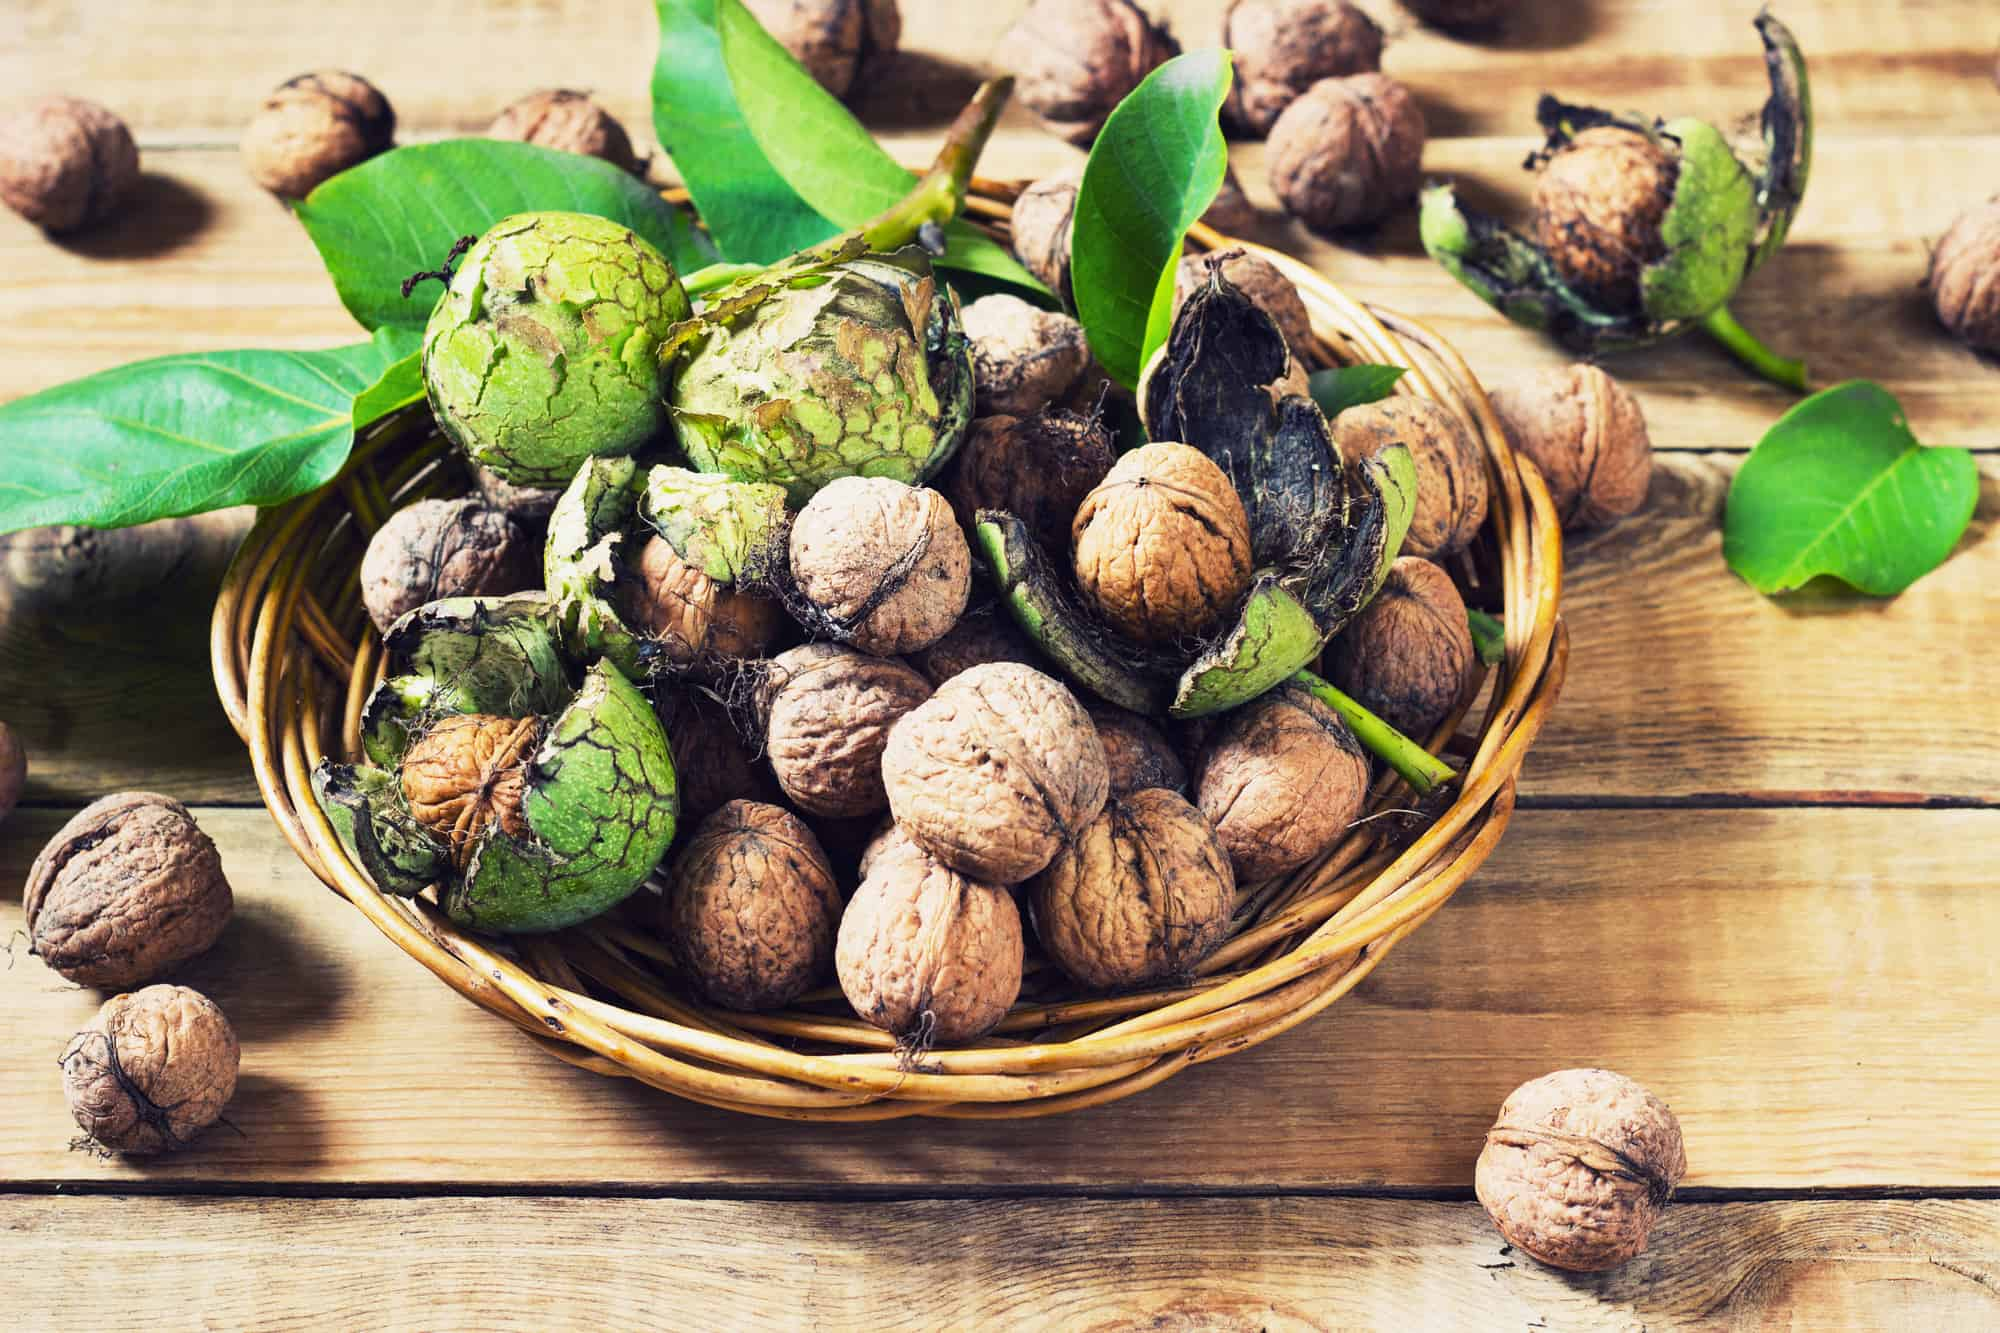 Walnuts in green husks with leaves on a wooden background